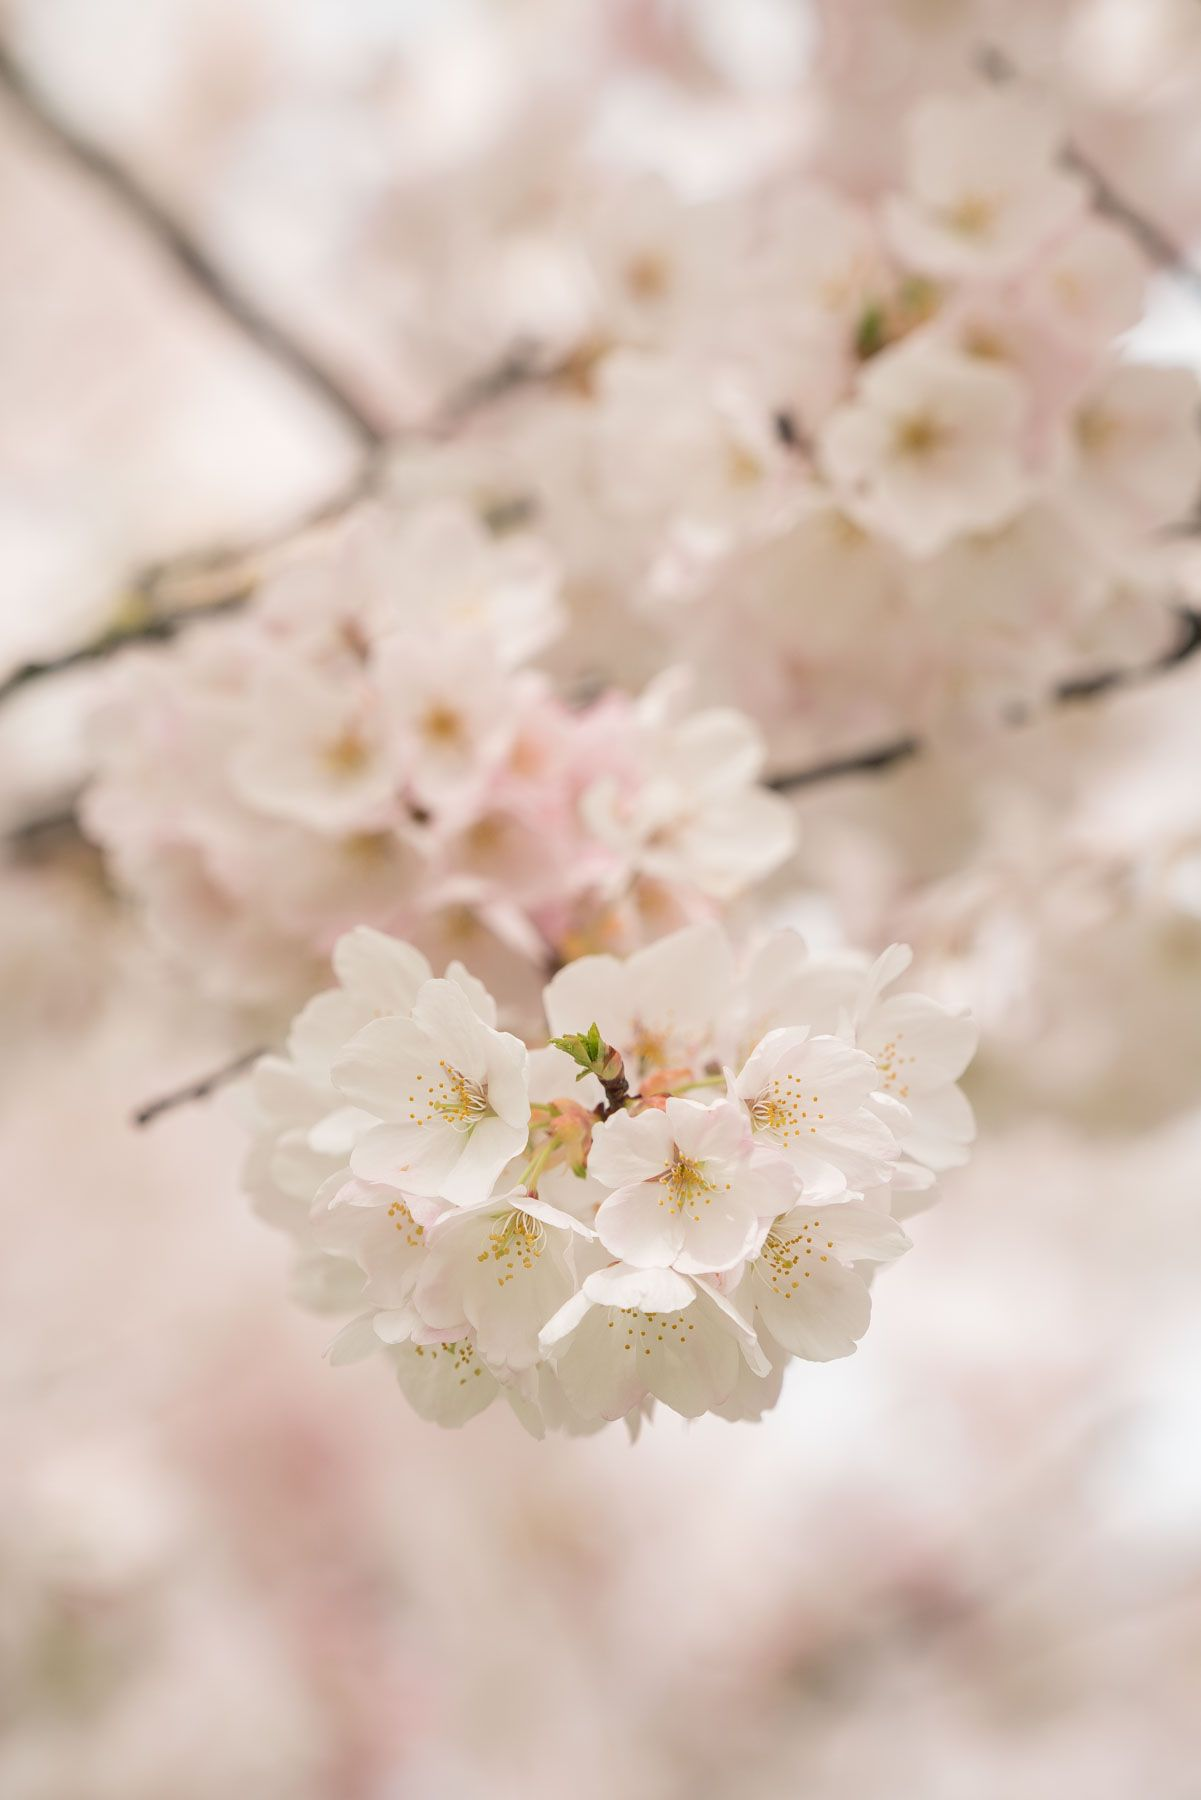 2020 Local S Guide To Cherry Blossoms In Portland Visit Portland Spring Blooms Lilac Gardening Cherry Blossom Season